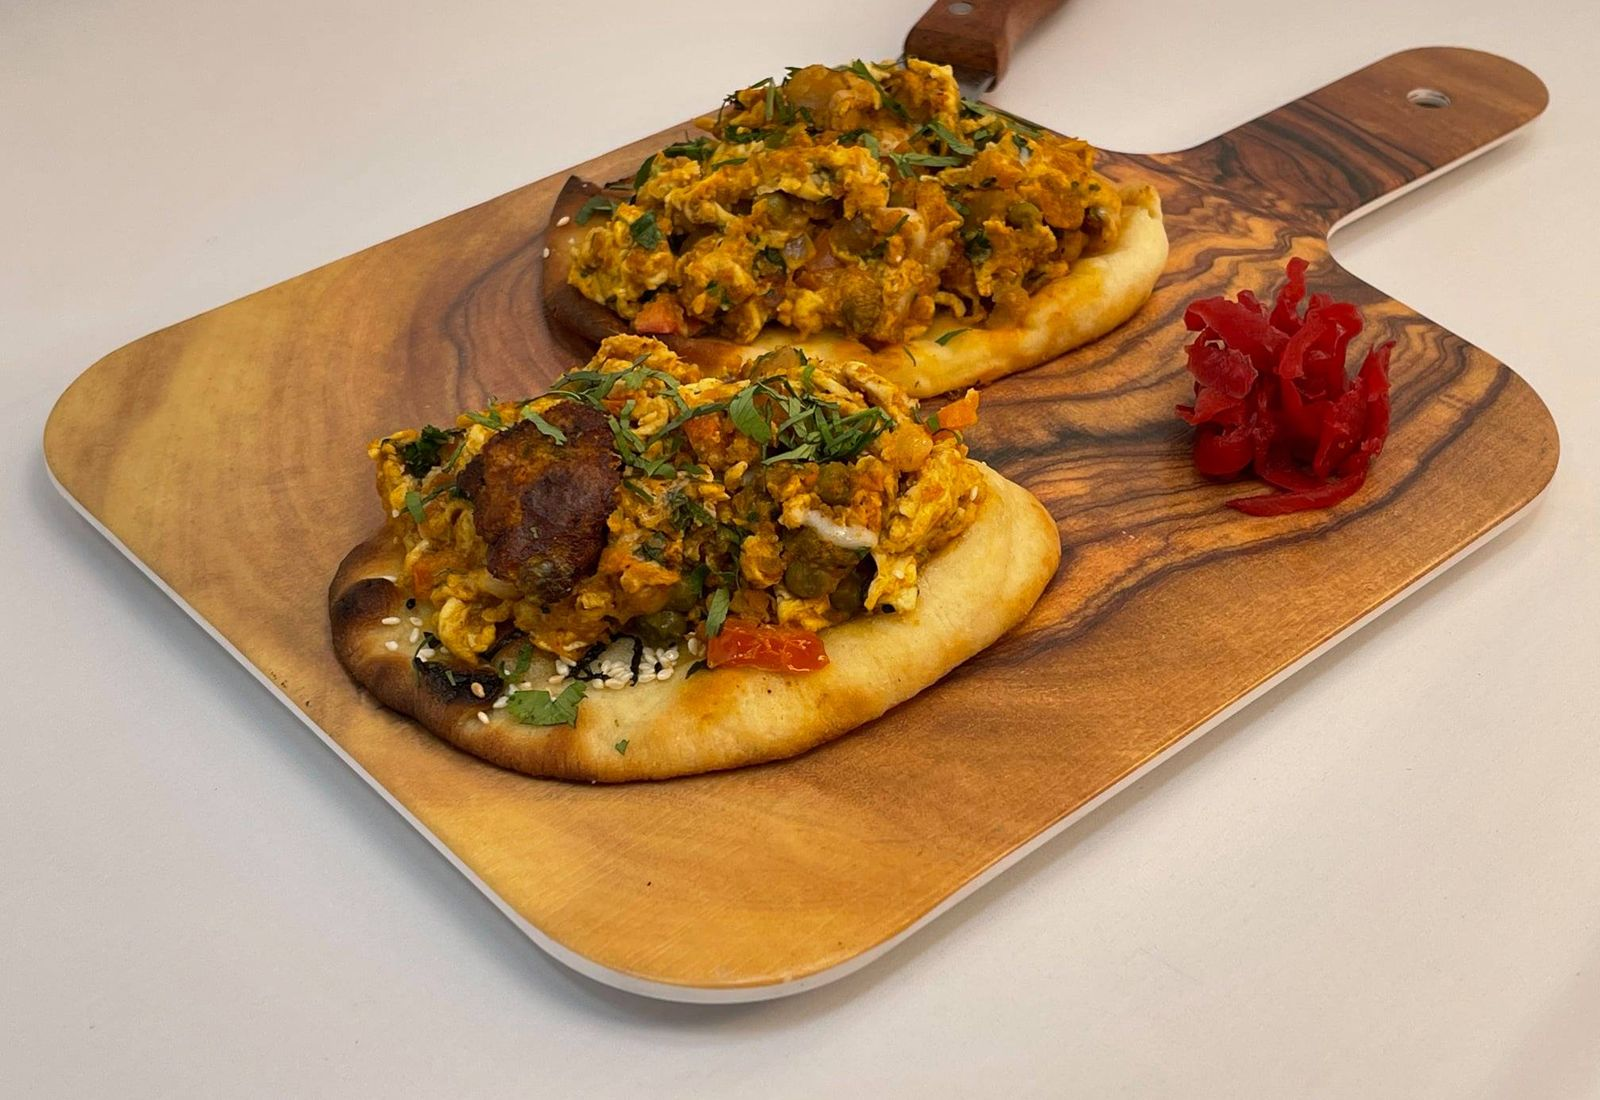 Curry Up Now Launches Weekend Brunch in the Bay Area